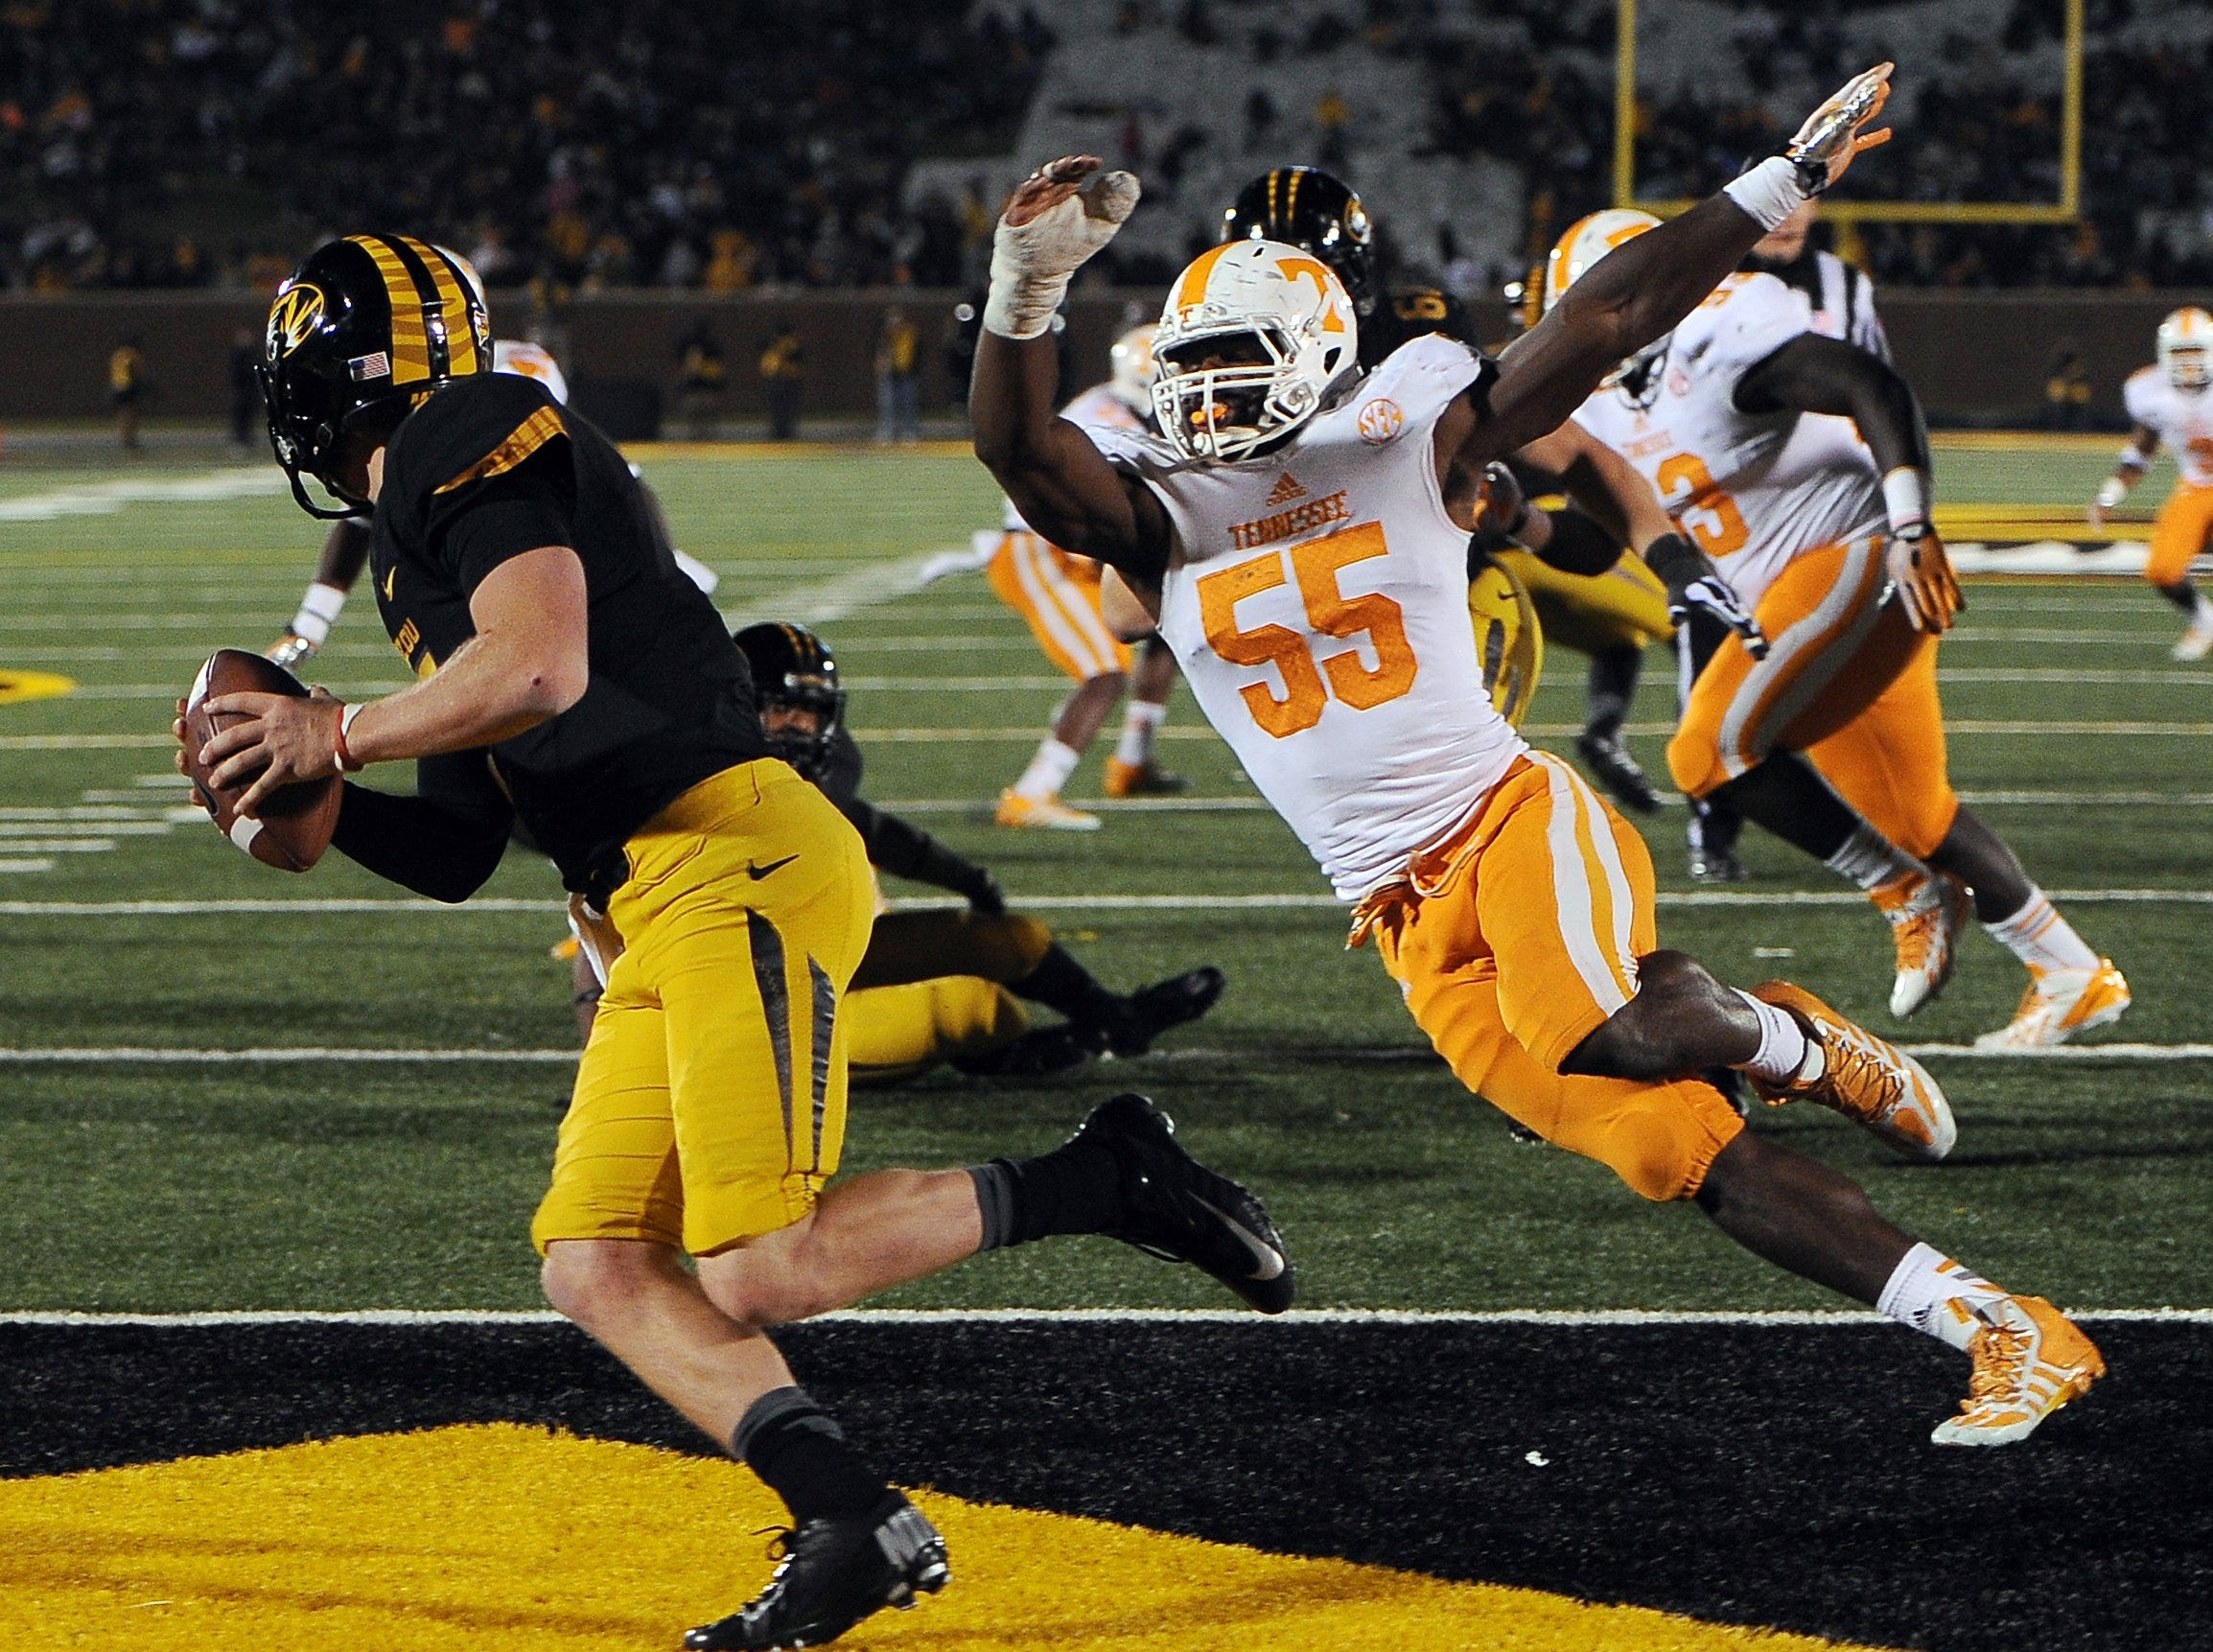 Missouri quarterback Maty Mauk, left, scrambles away from Tennessee defensive lineman Jacques Smith (55) during the second half of an NCAA college football game Saturday, Nov. 2, 2013, in Columbia, Mo.